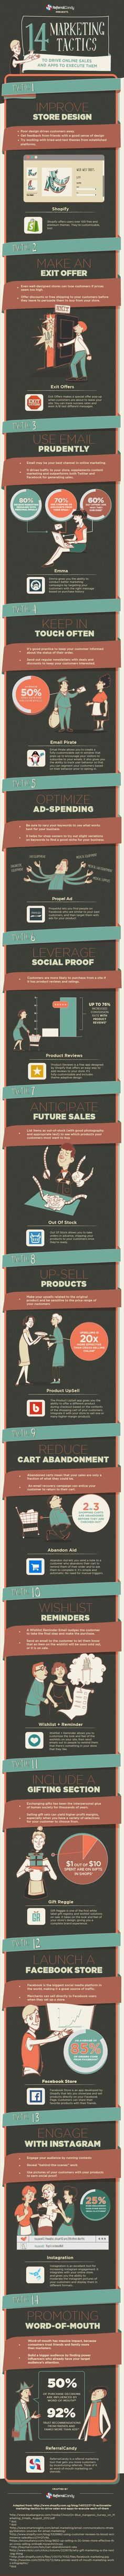 Are you using the right #marketing tactics to drive online sales for your business? This #infographic provides you with the information you need.